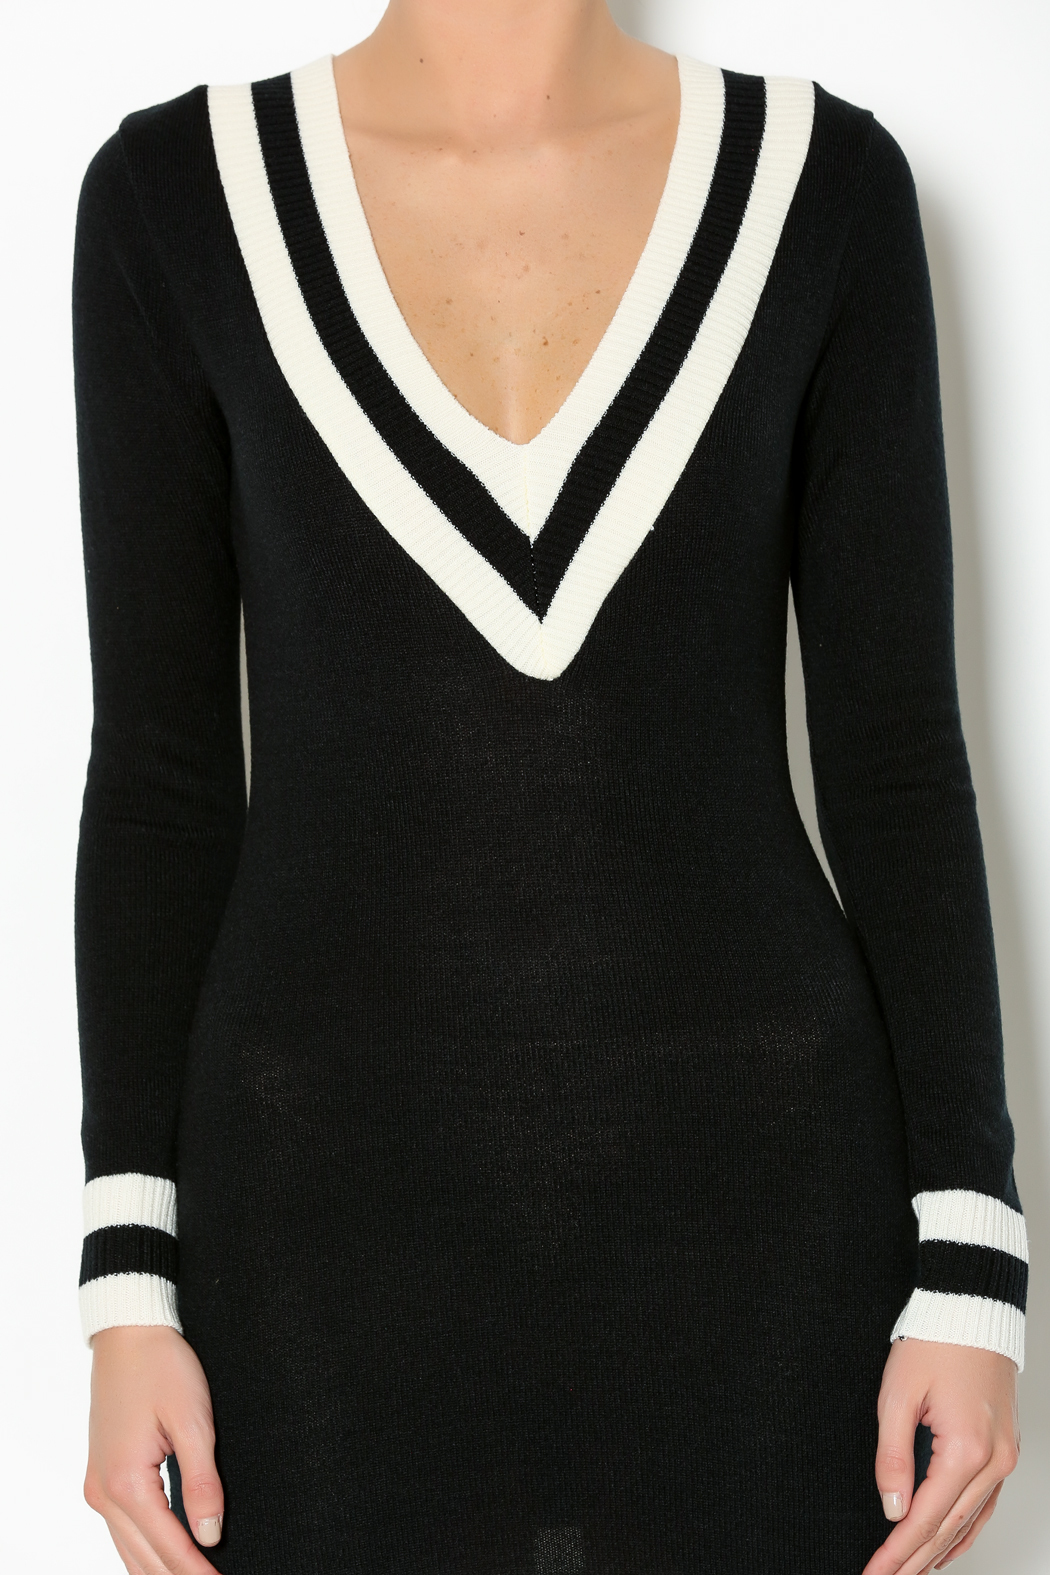 9bb099f5d8 hera collection Sporty Sweater Dress from Alabama by Flaunt Boutique —  Shoptiques